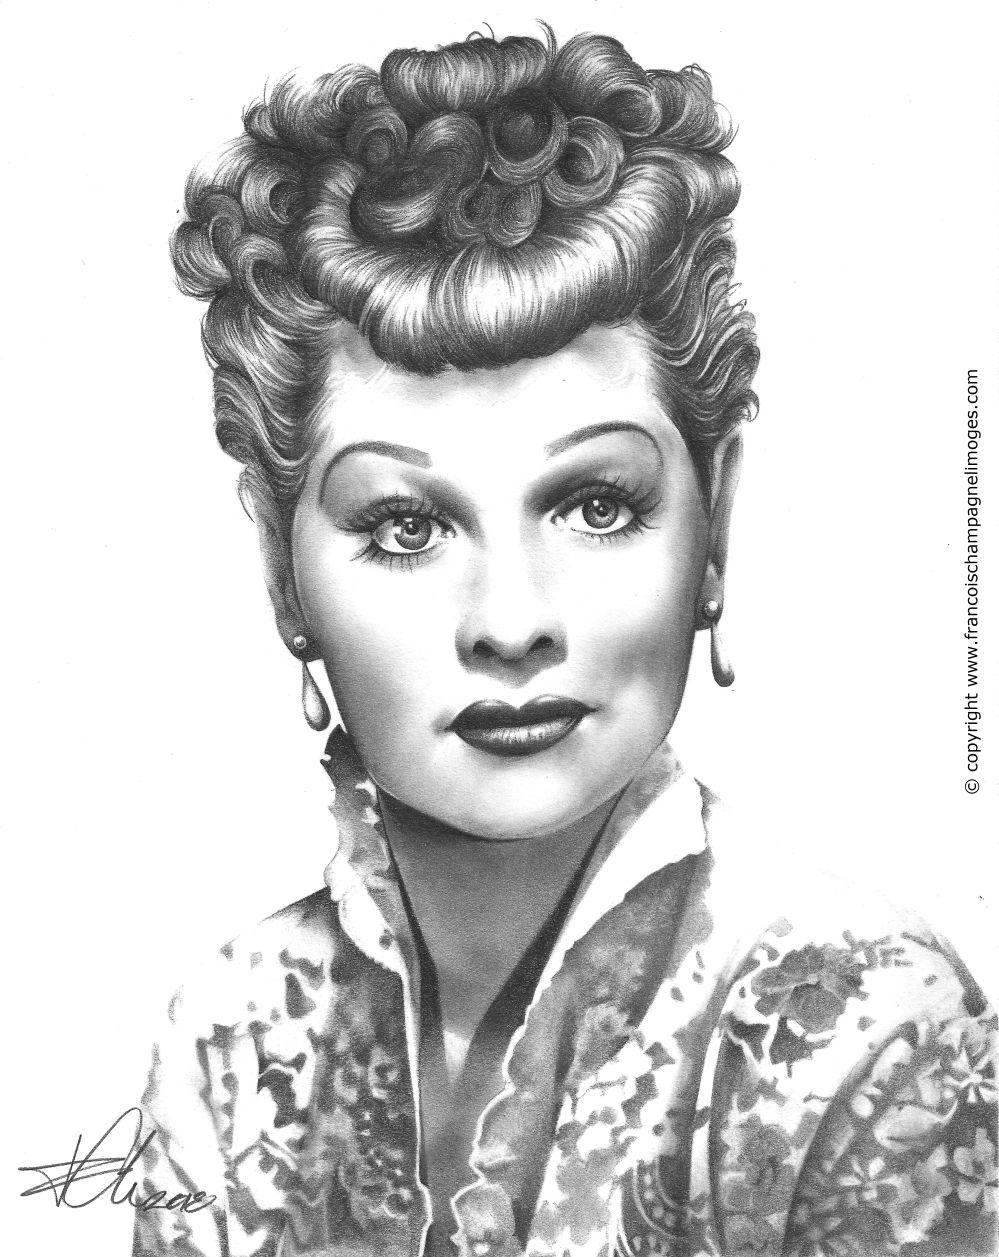 Lucille_Ball_600dpi_w_copyright